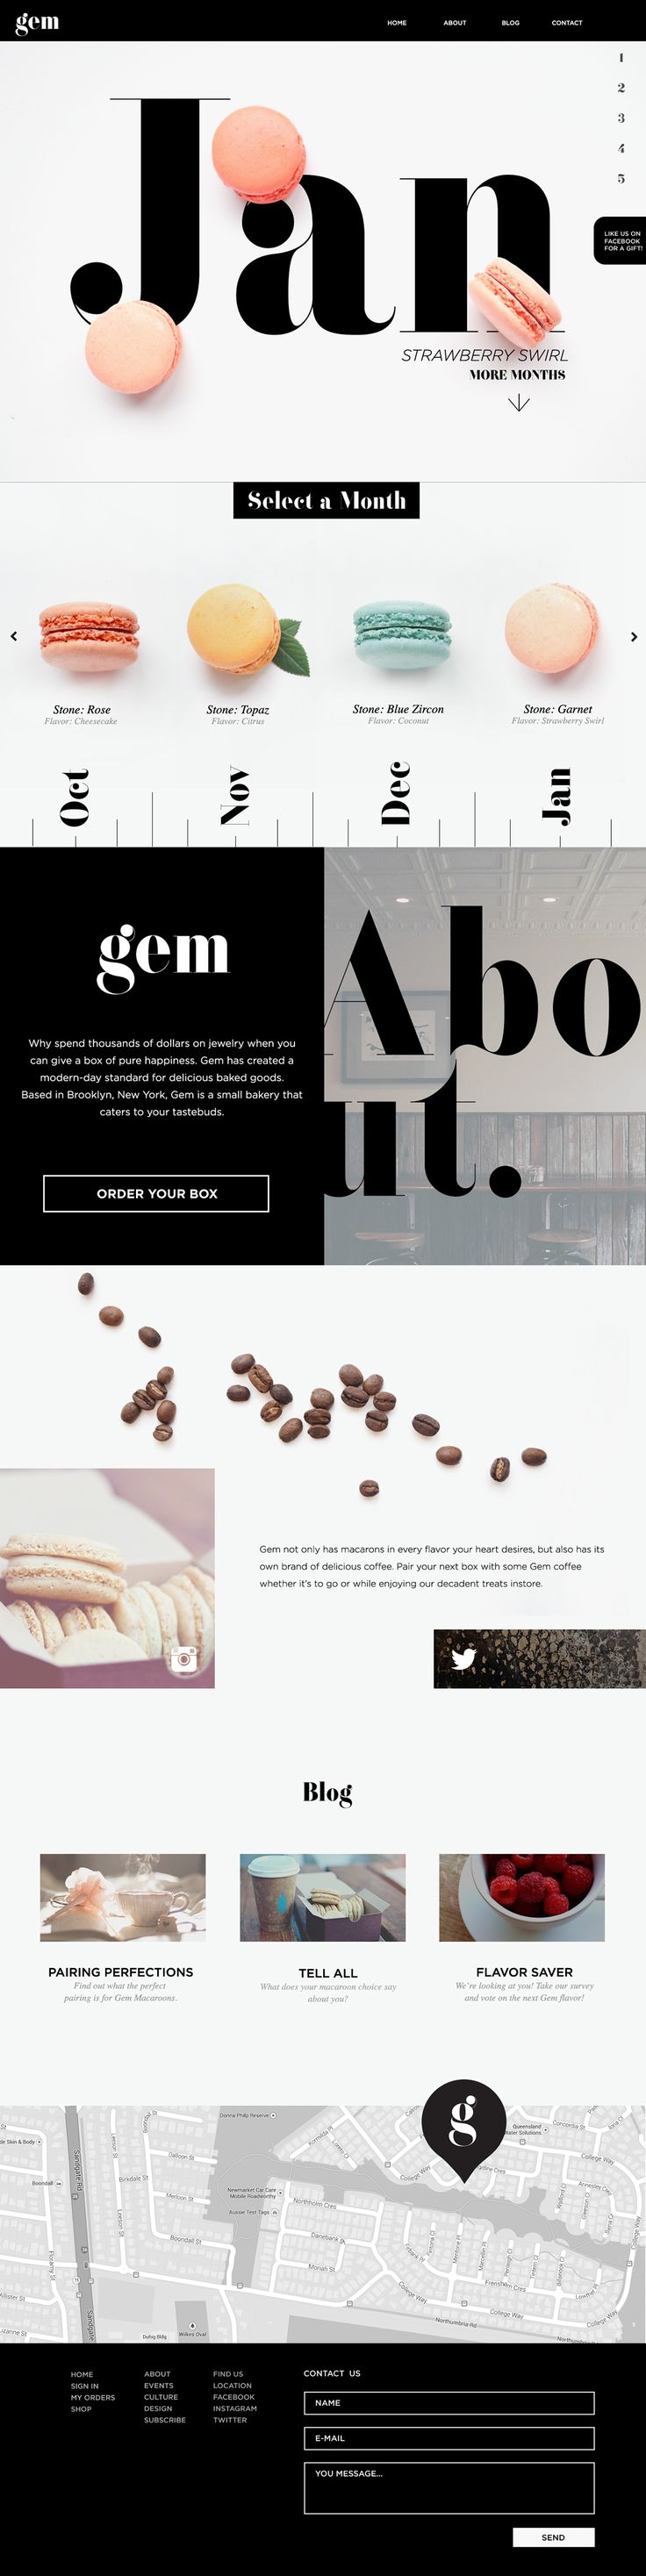 Gem Bakery on Behance